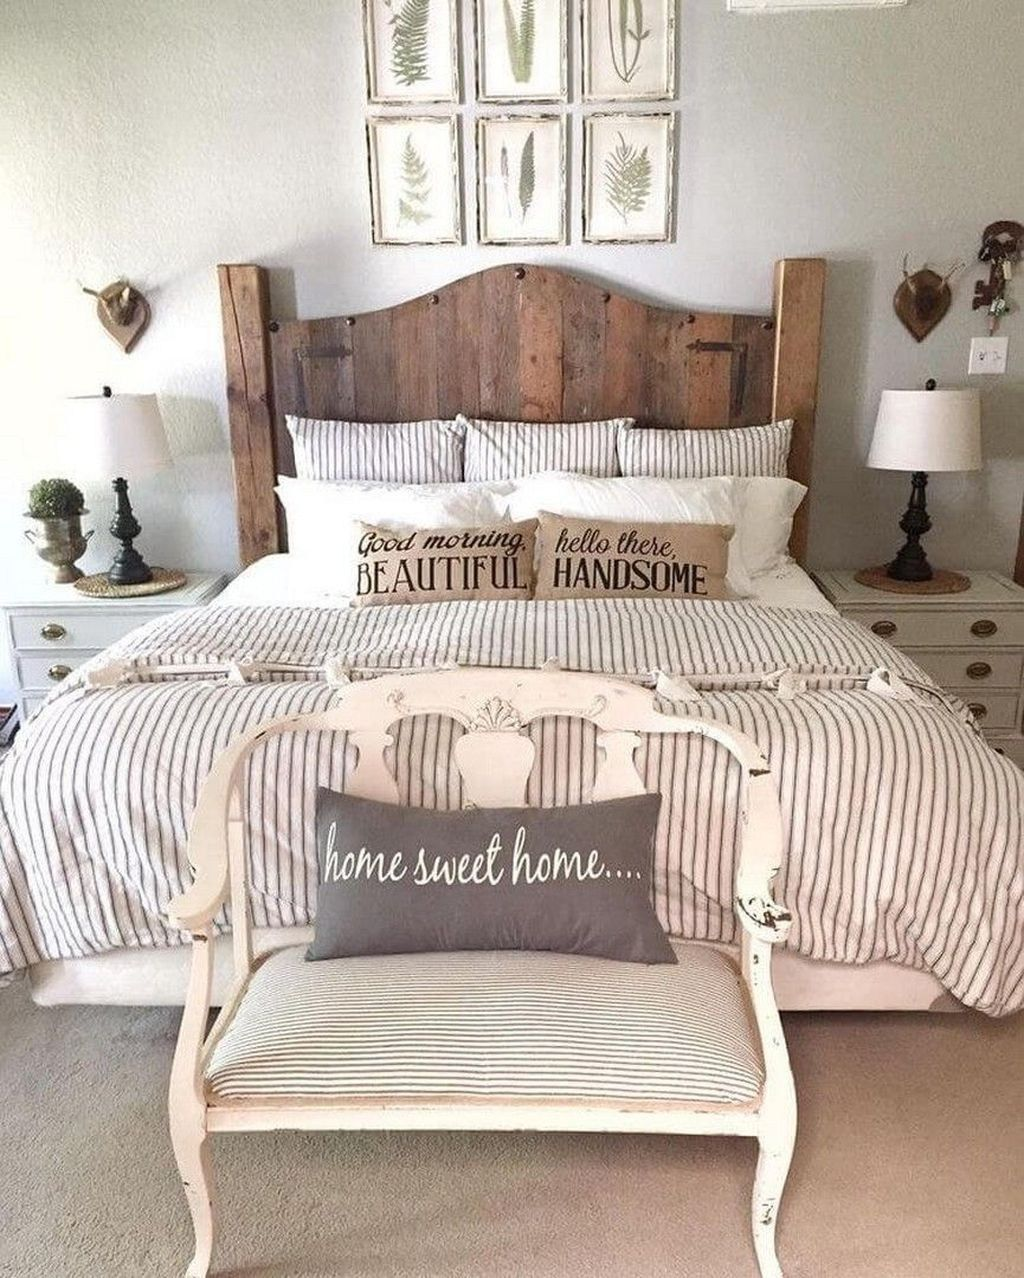 What to Put on Wall Above Bed - 44 Amazing Ideas